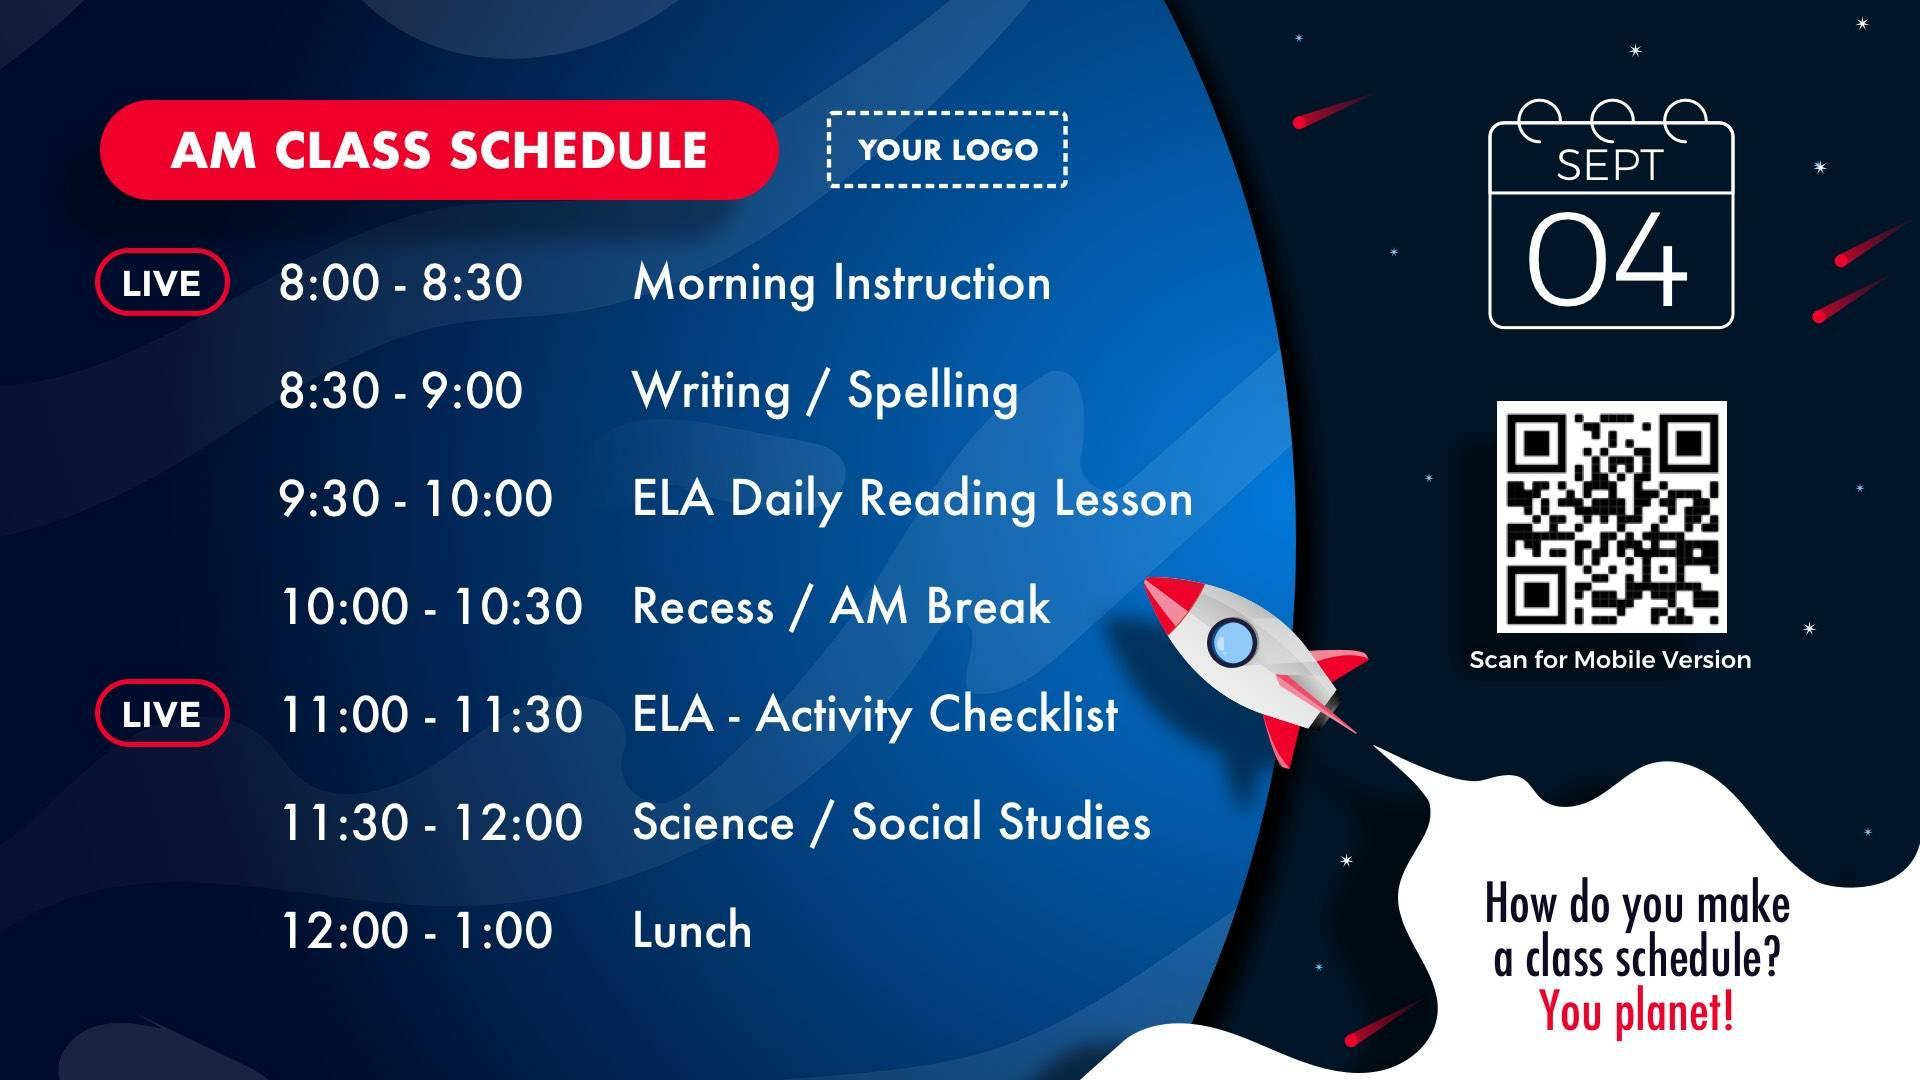 Class Schedule Distance Learning Digital Signage Template